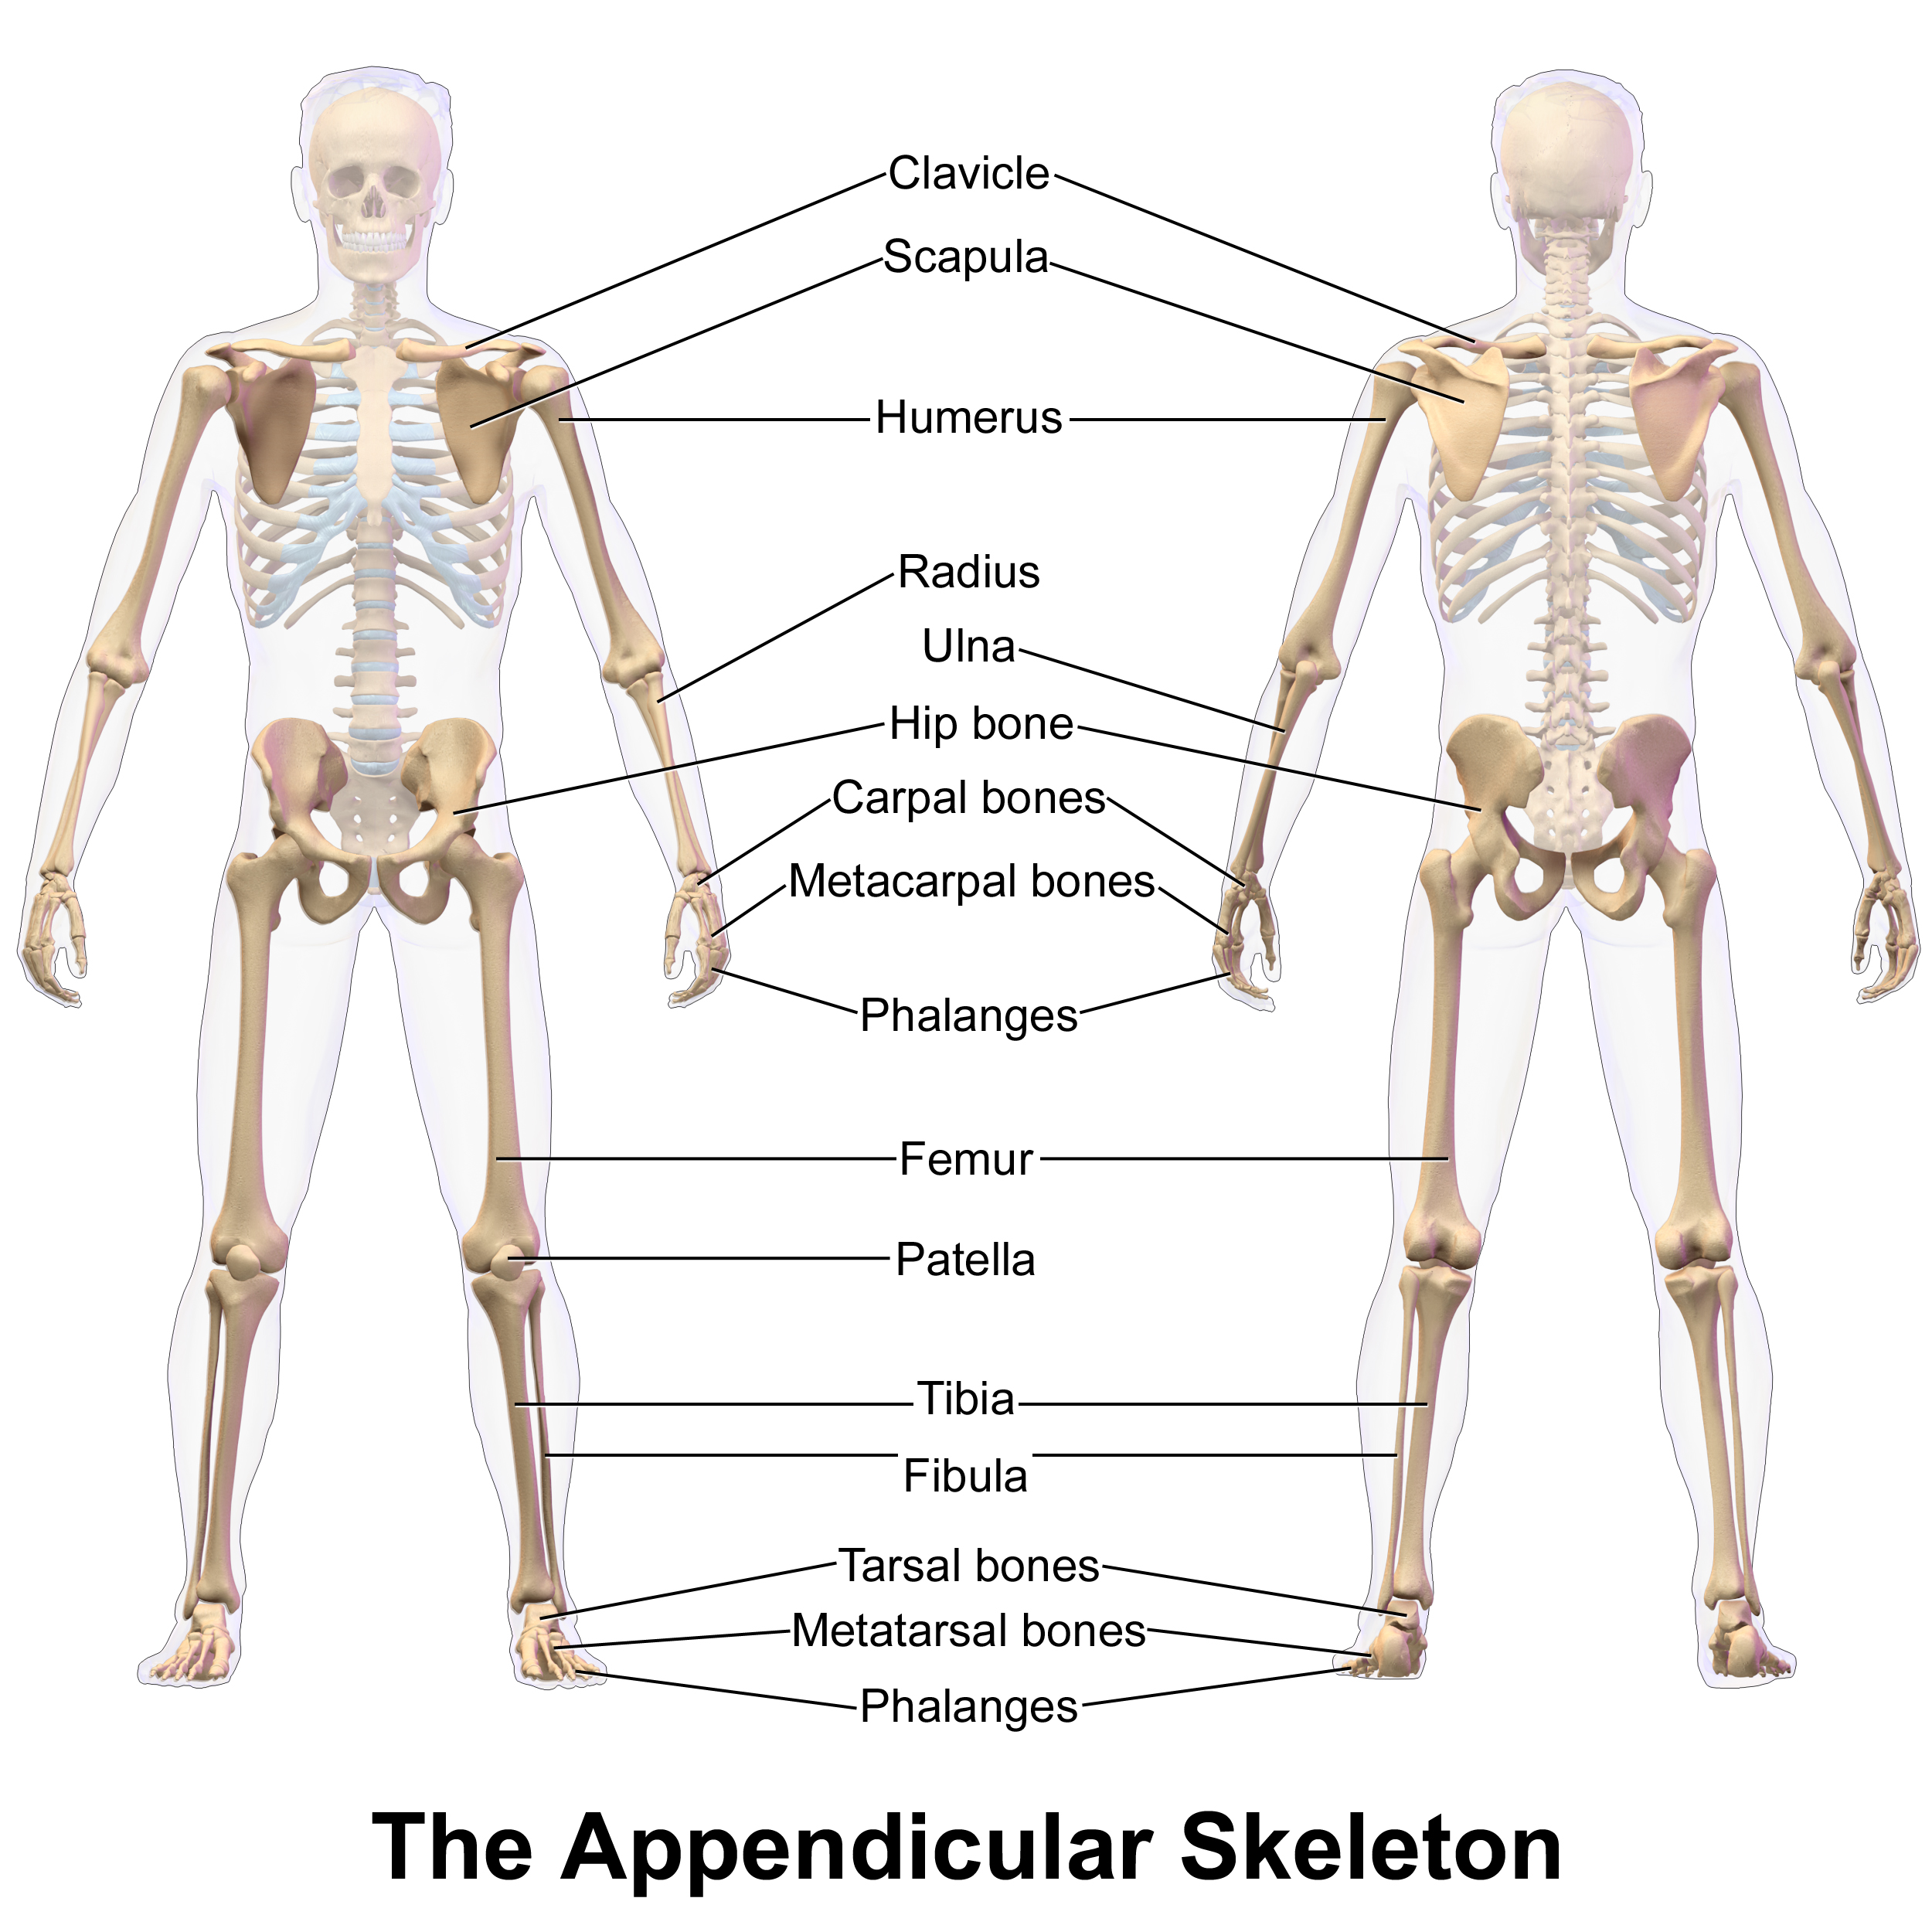 lower appendicular skeleton - Google Search | โครงกระดูก | Pinterest ...